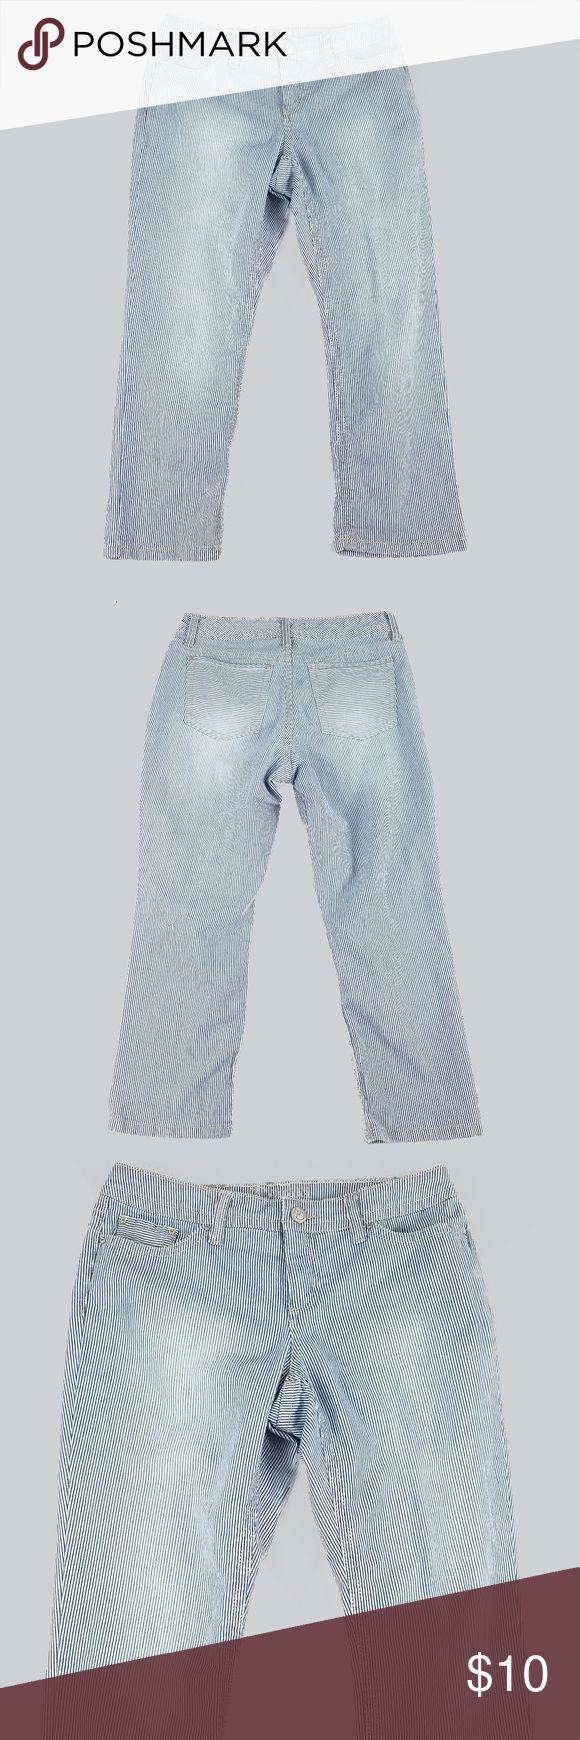 """New Directions Womens Capris 10 Railroad Stripe New Directions Womens Capris 10 Railroad Stripe Cotton Stretch Blue White  Excellent condition  Seam to seam across waist: 16.5"""" Rise: 9.25"""" Inseam: 24.5"""" Top of waist to bottom (length): 34"""" new directions Jeans Ankle & Cropped"""